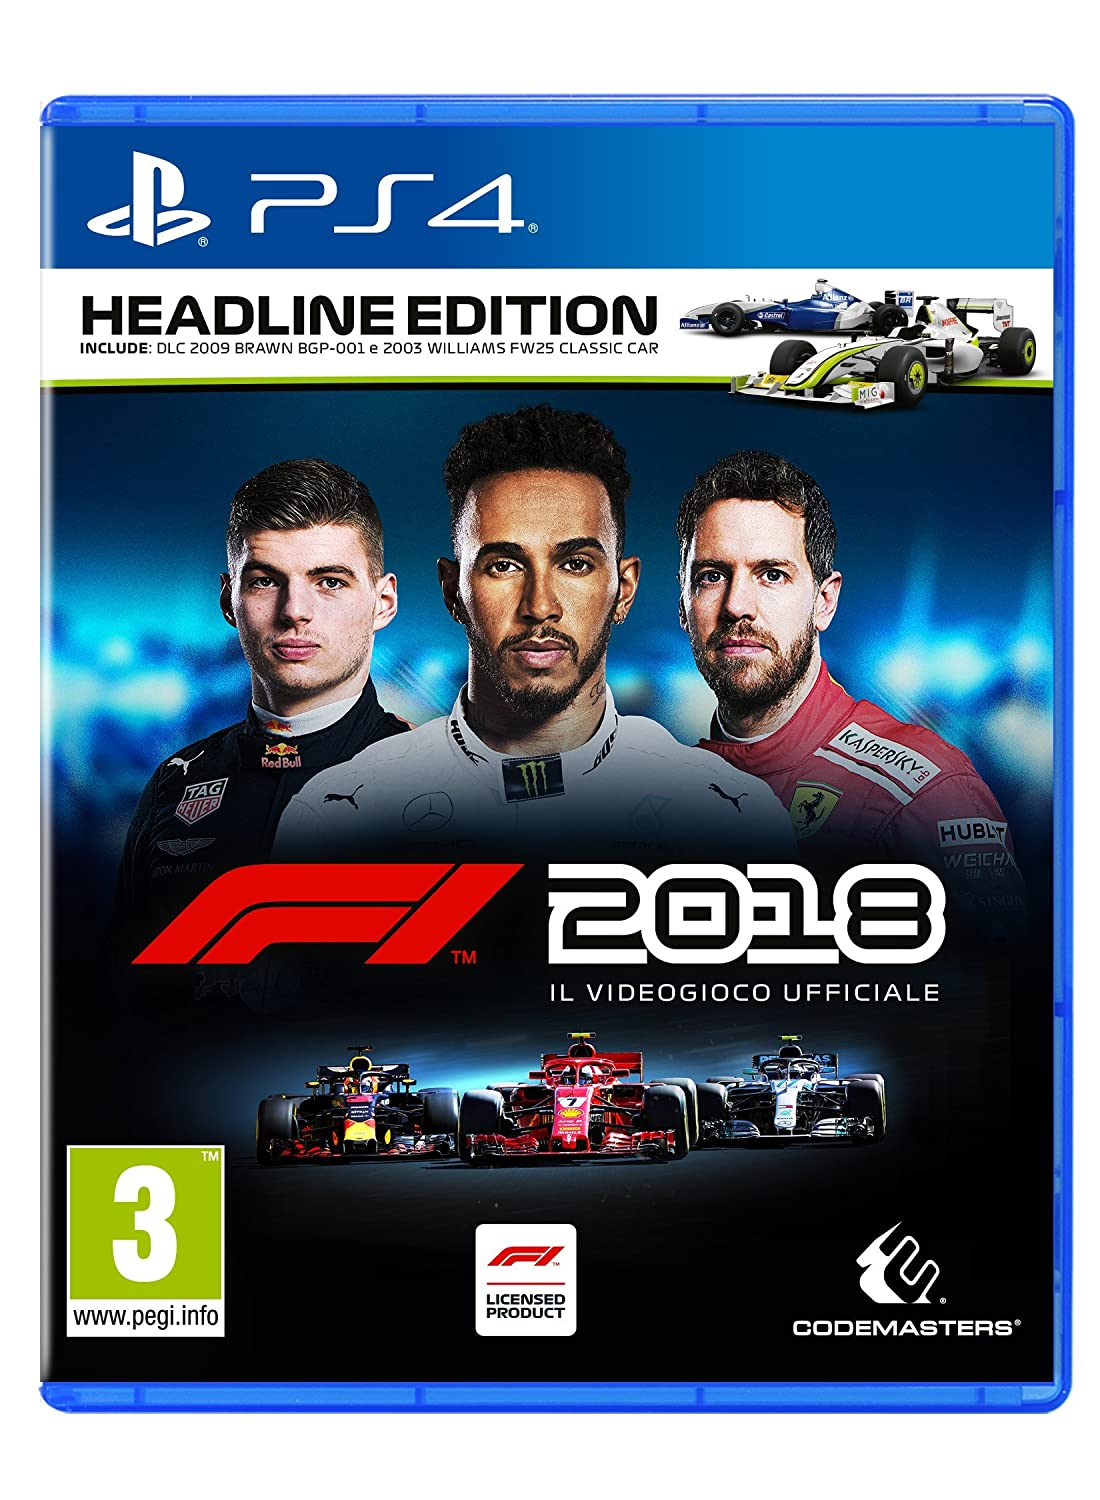 F1 2018   Headline Edition   Play Station 4 by Codemasters